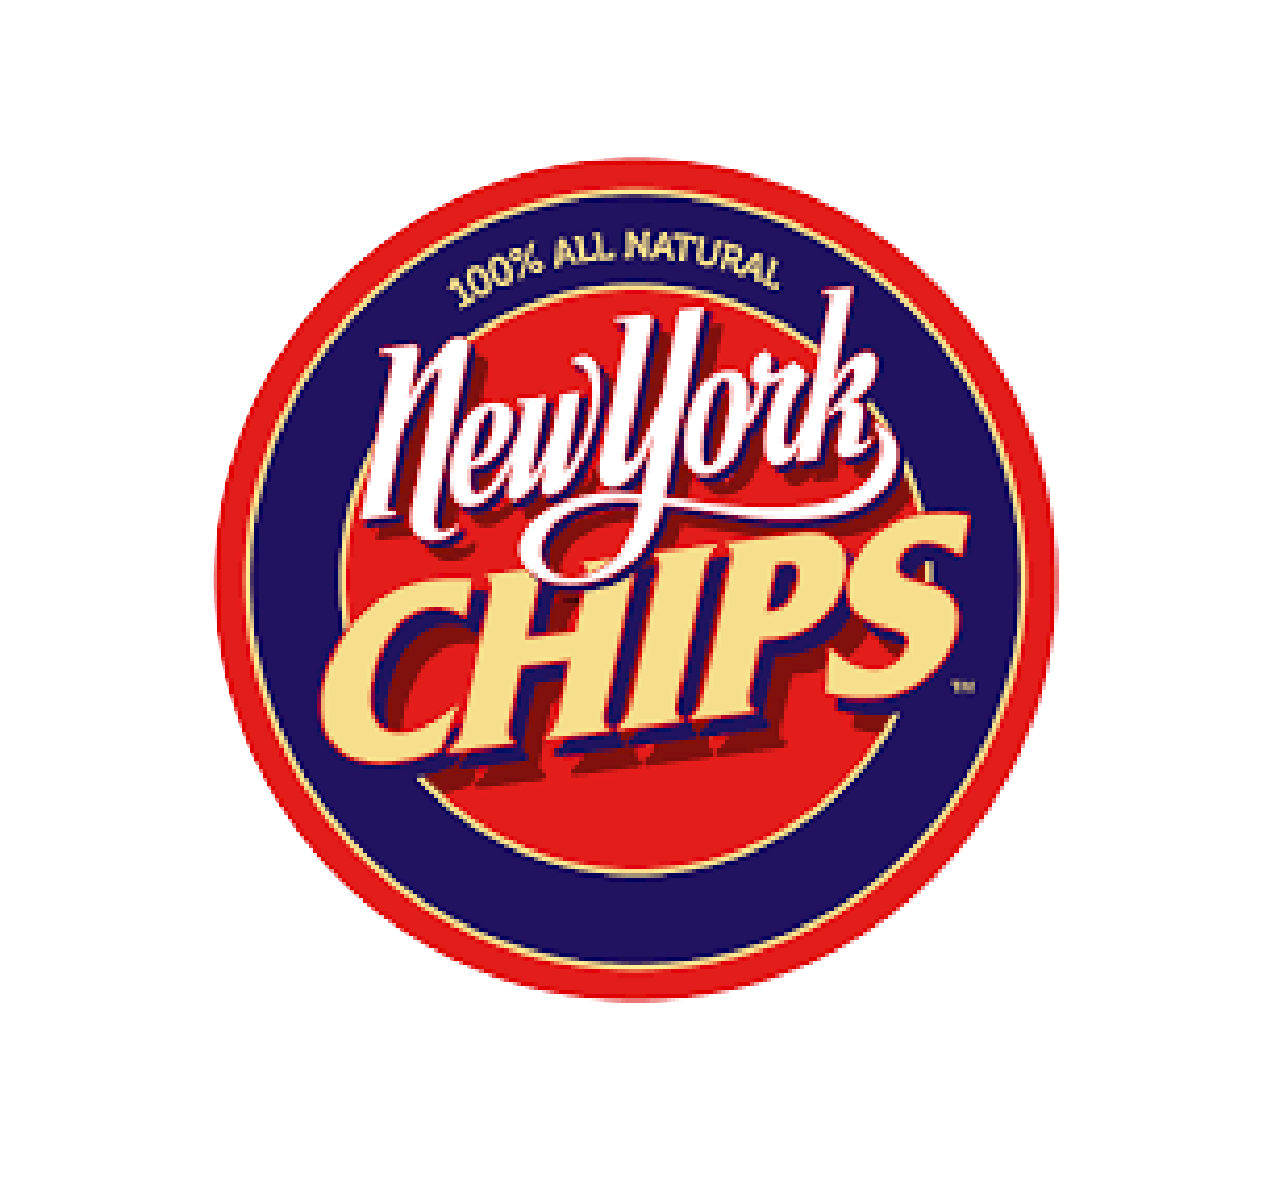 New York Chips